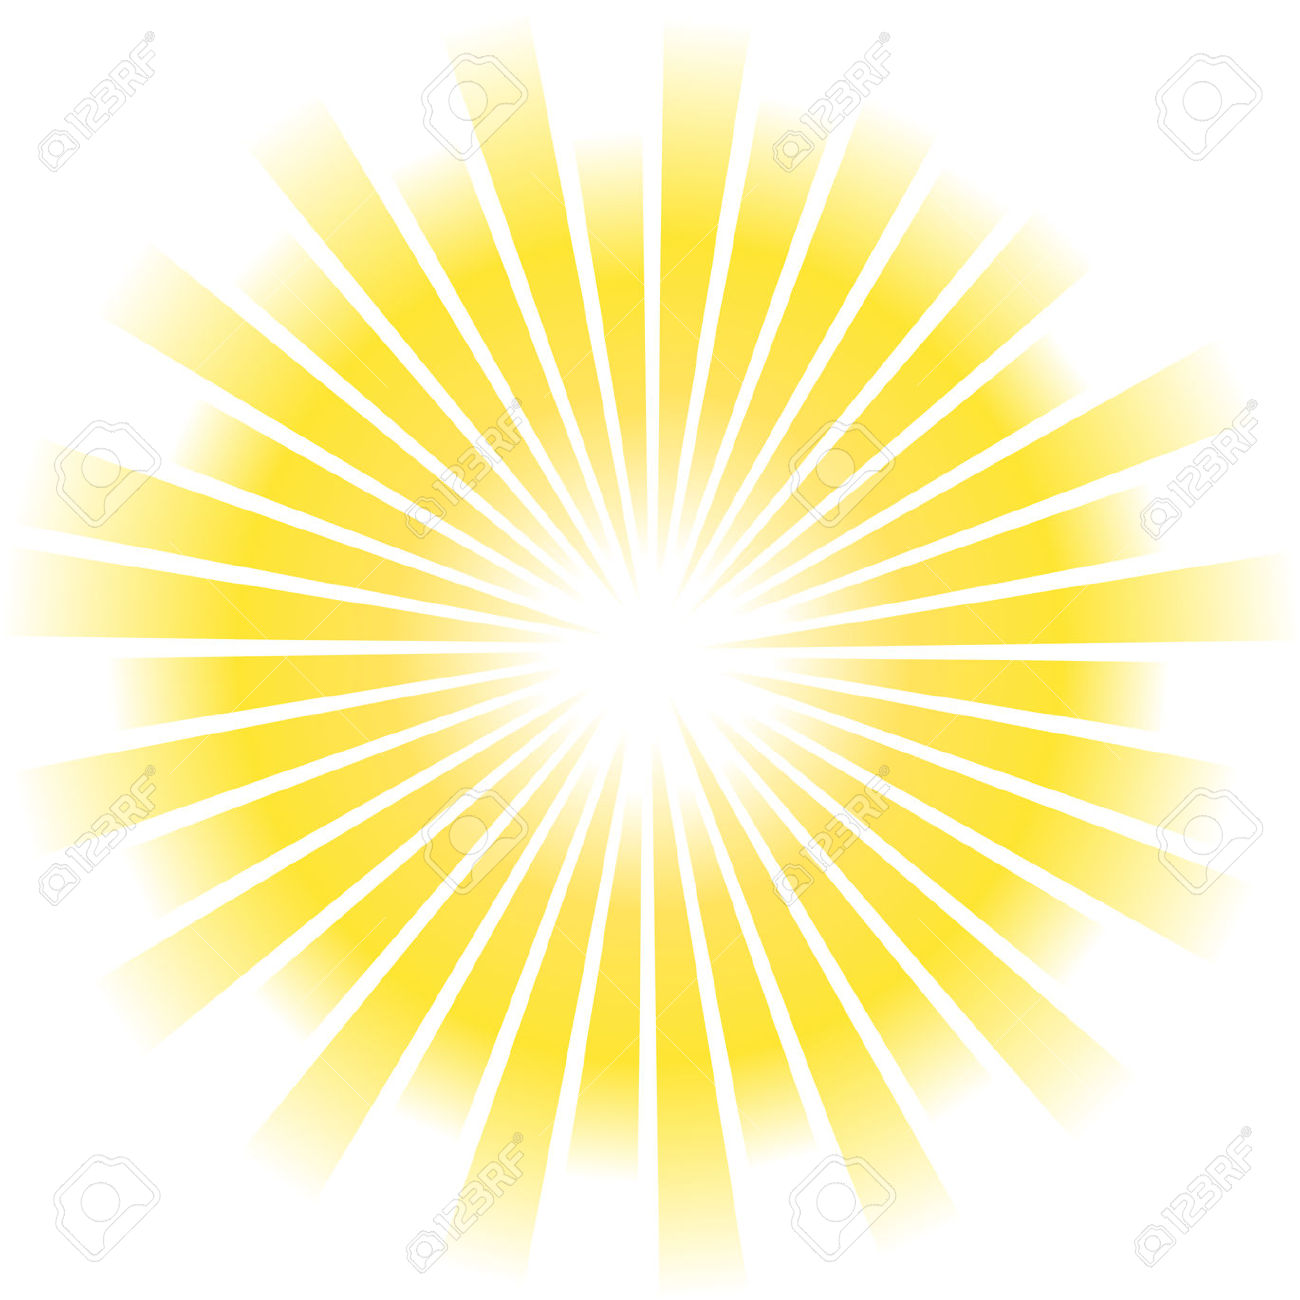 1300x1300 15 Sunburst Clipart Sunrise For Free Download On Mbtskoudsalg